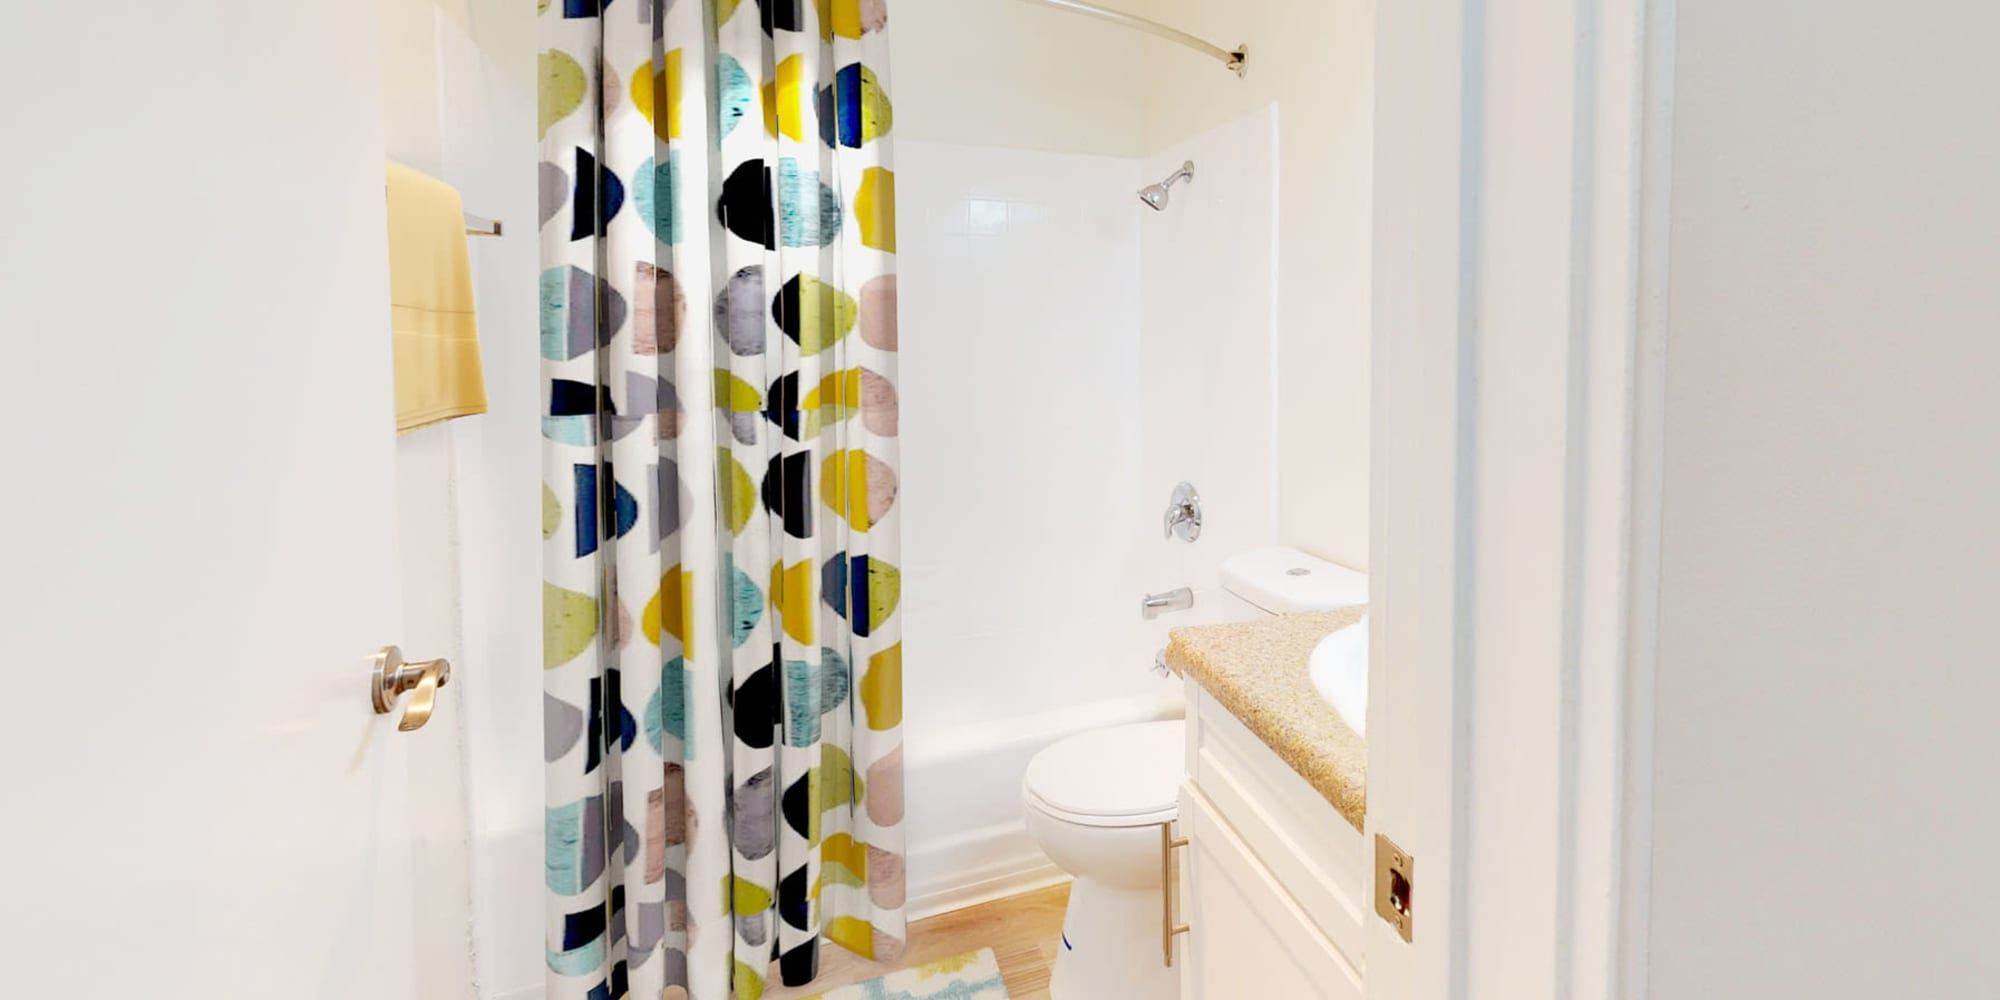 Colorful shower curtain in a model two bedroom home's bathroom at West Park Village in Los Angeles, California